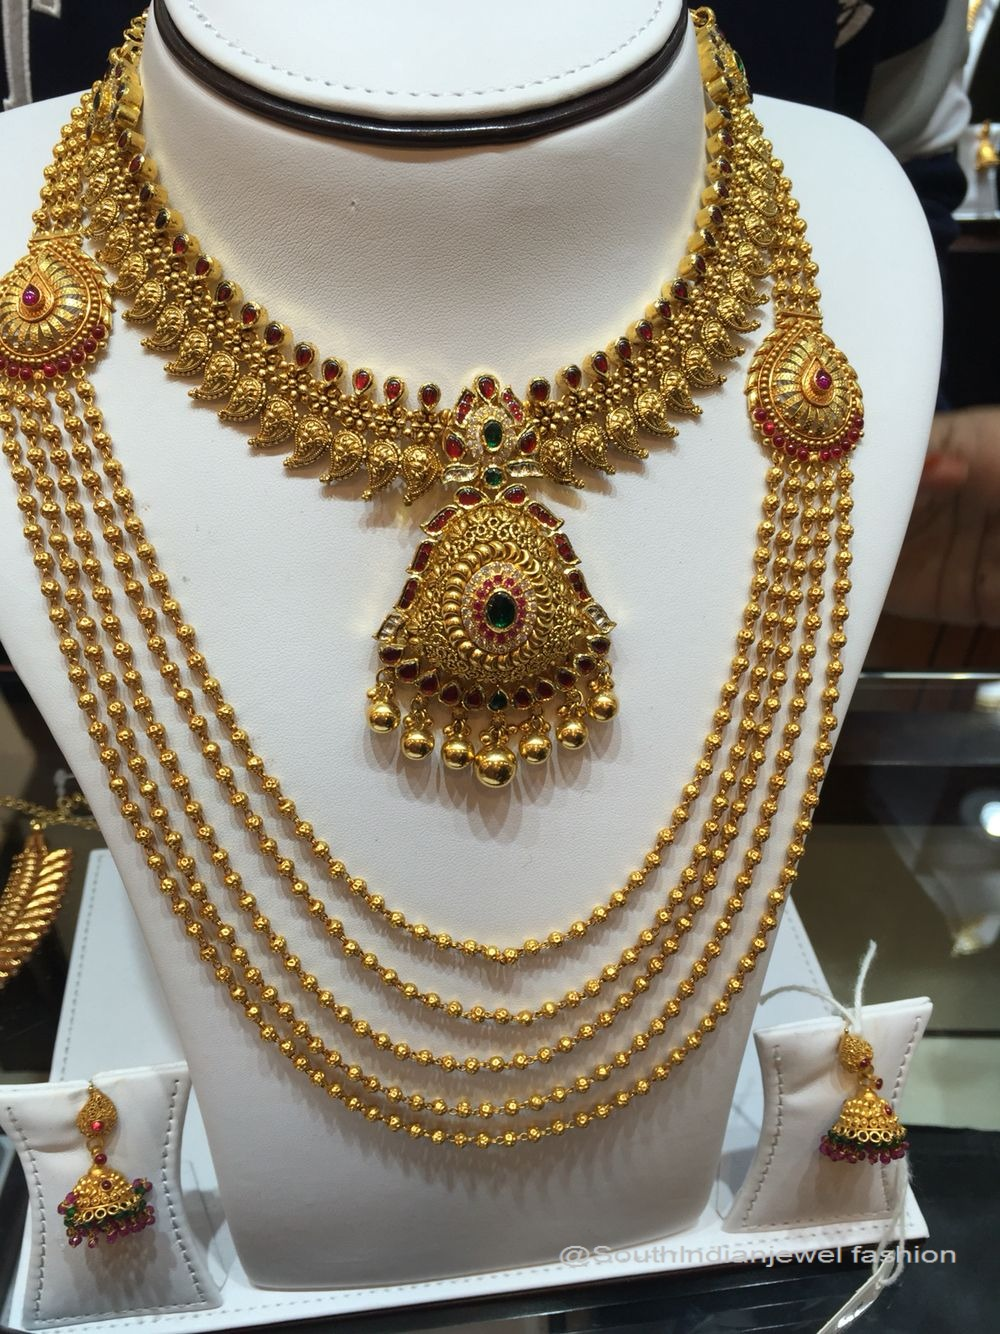 15 Stunning Gold Jewellery Designs From Grt Grand Chennai